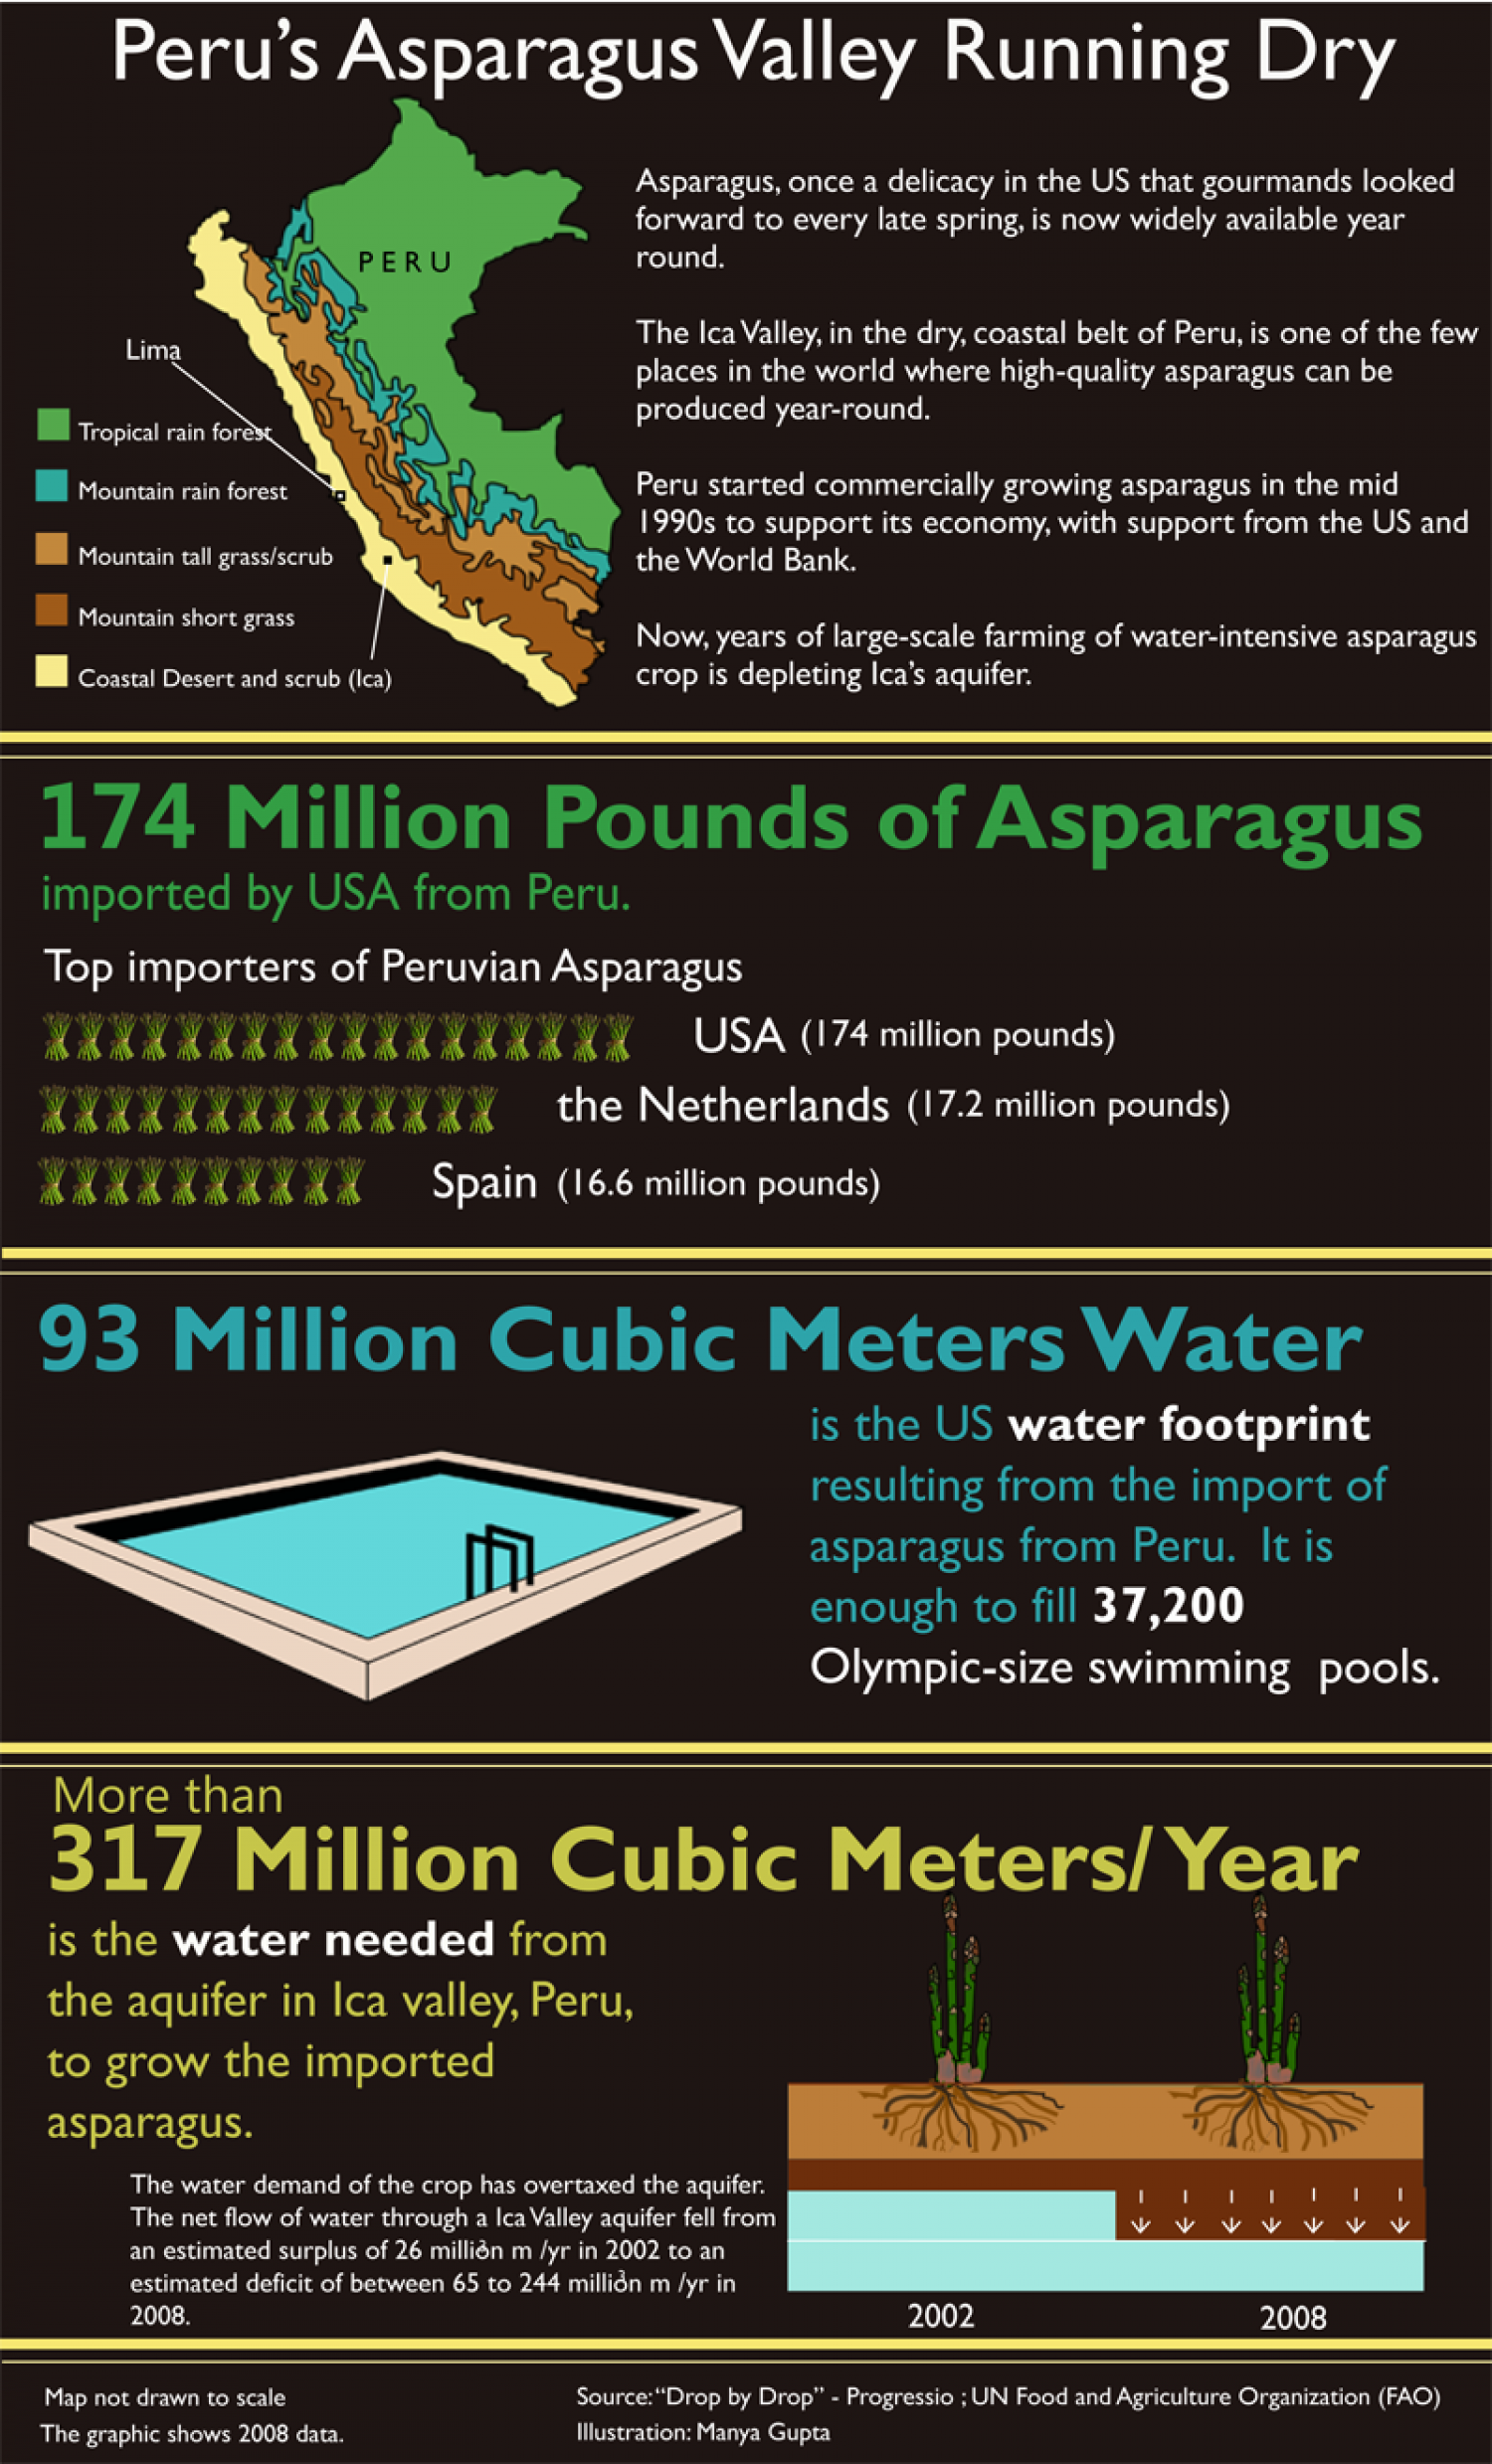 Peru's Asparagus Valley Running Dry Infographic